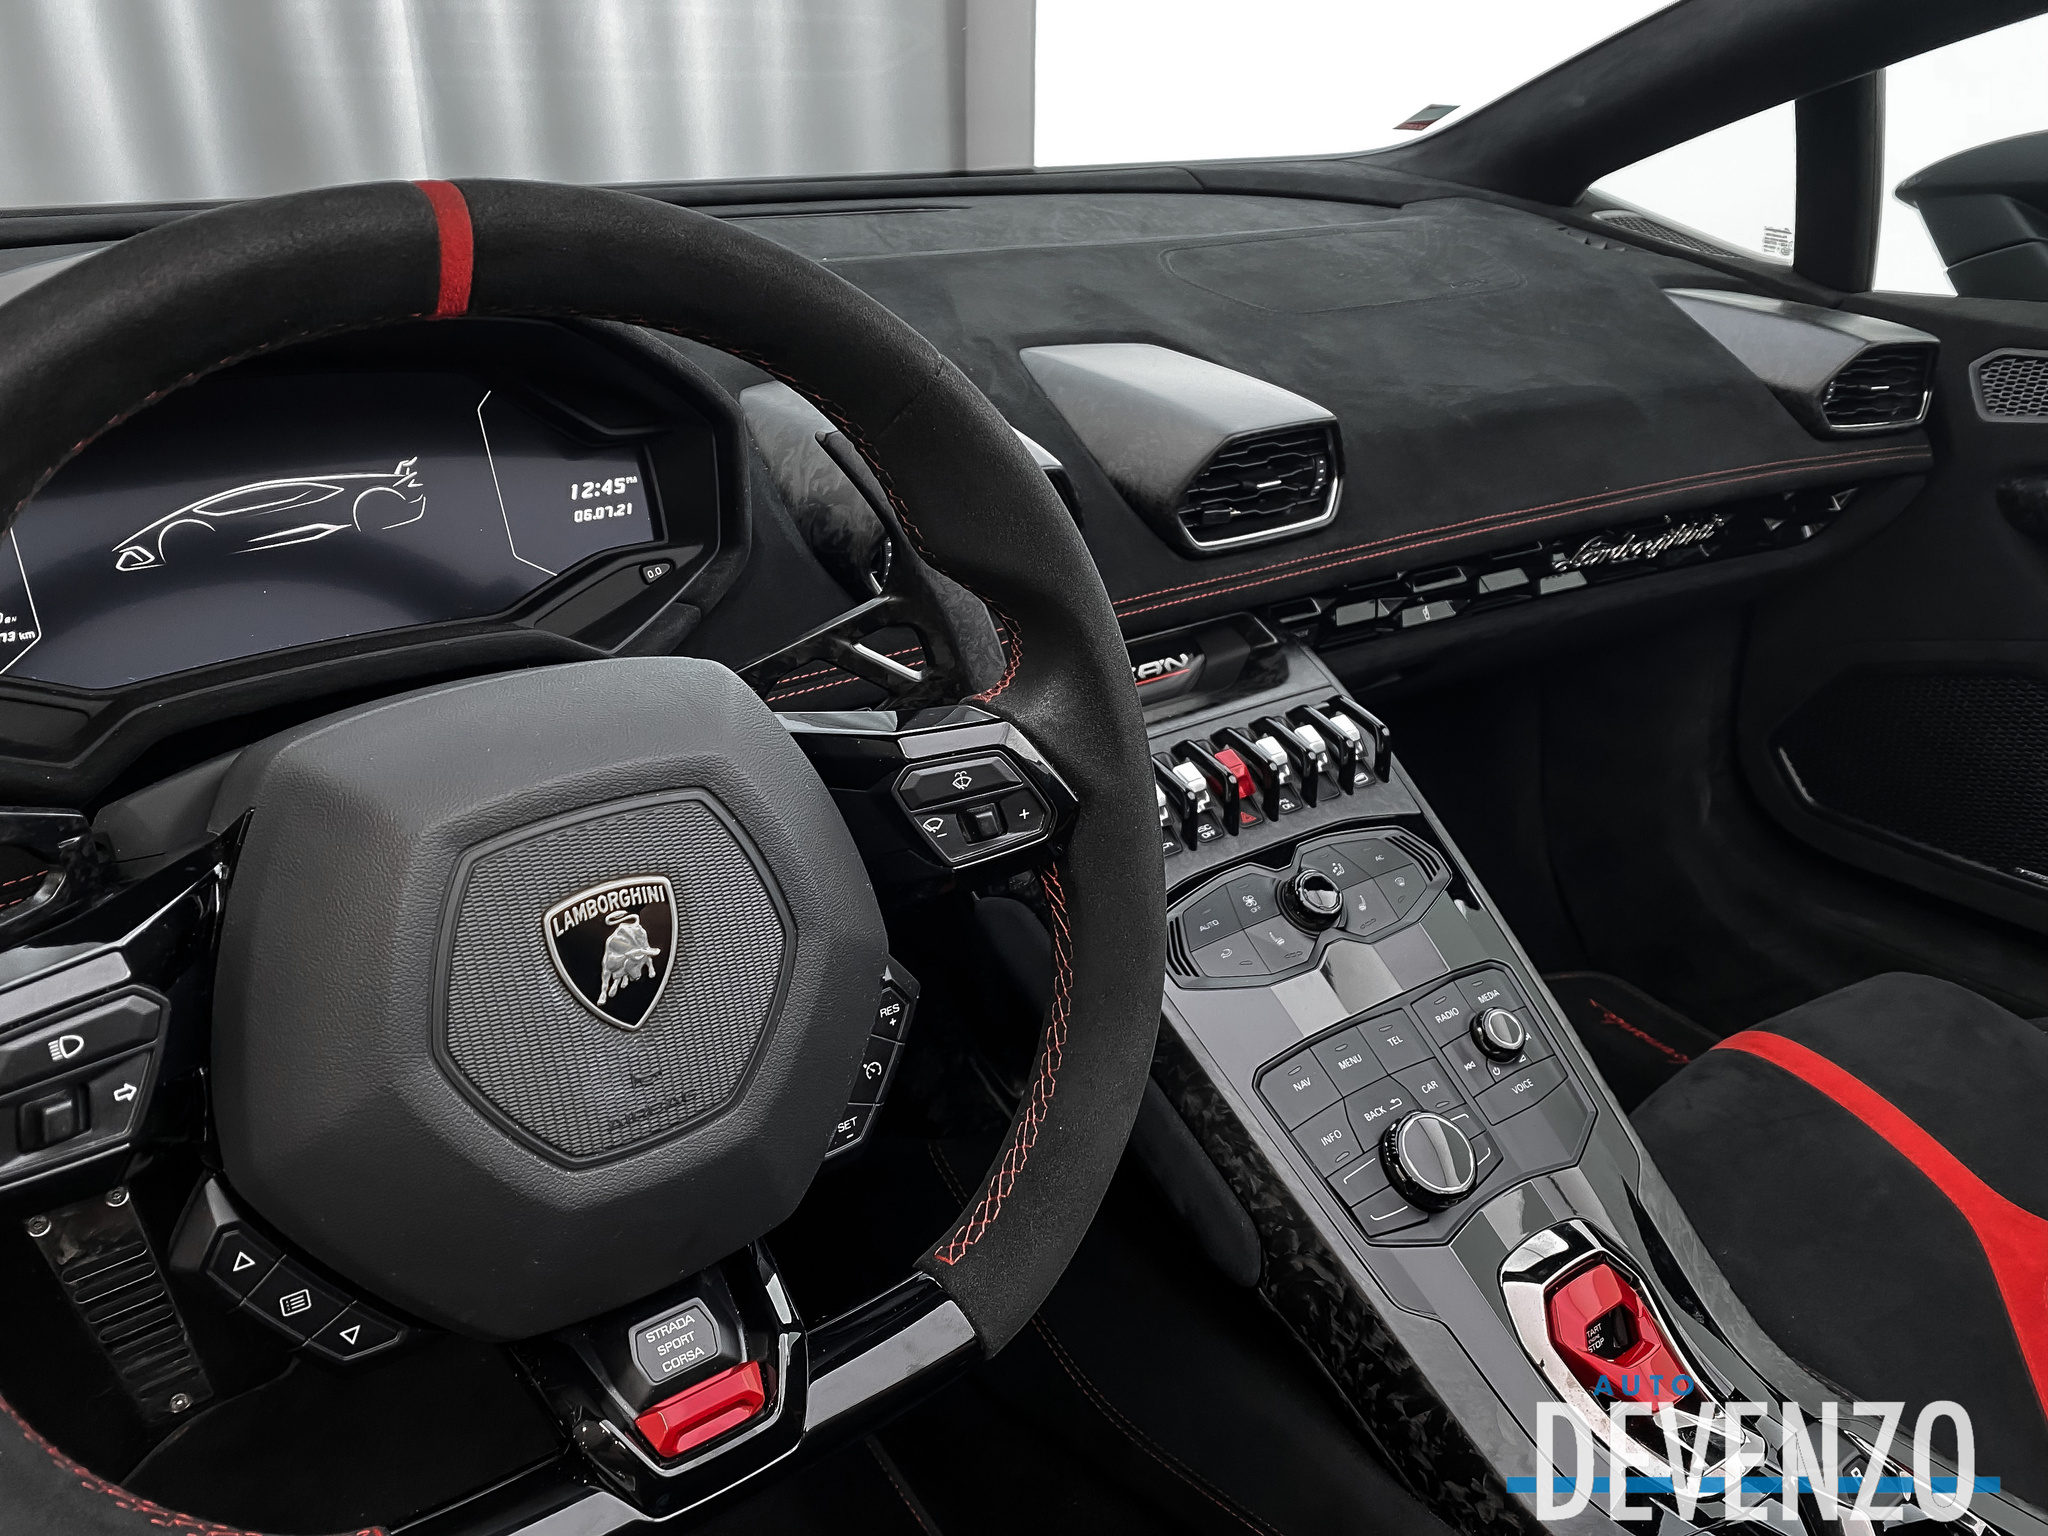 2018 Lamborghini Huracan Performante Spyder Full PPF / Forged Composites complet